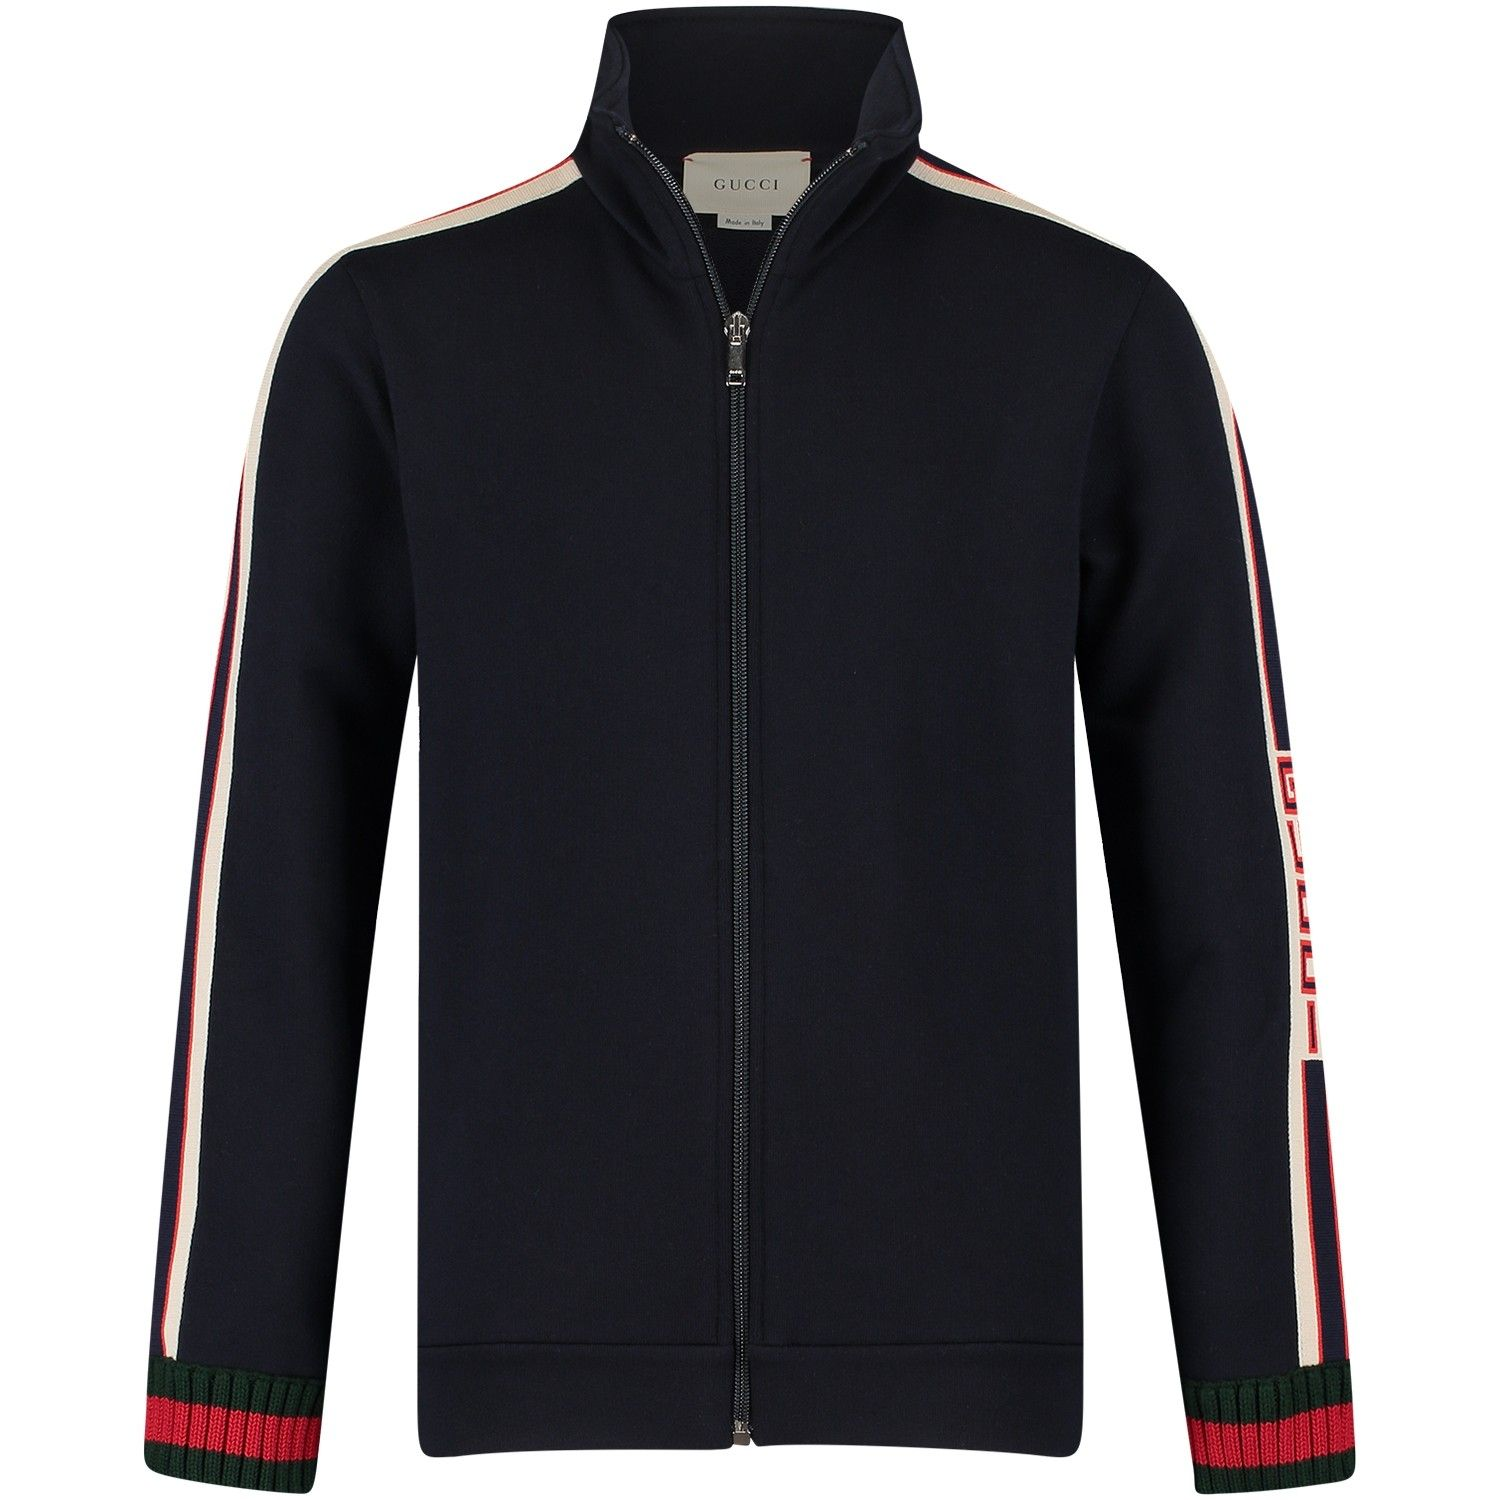 a59a2fe74 Black Gucci fleece jacket, cream strips along the arms and green/red ...